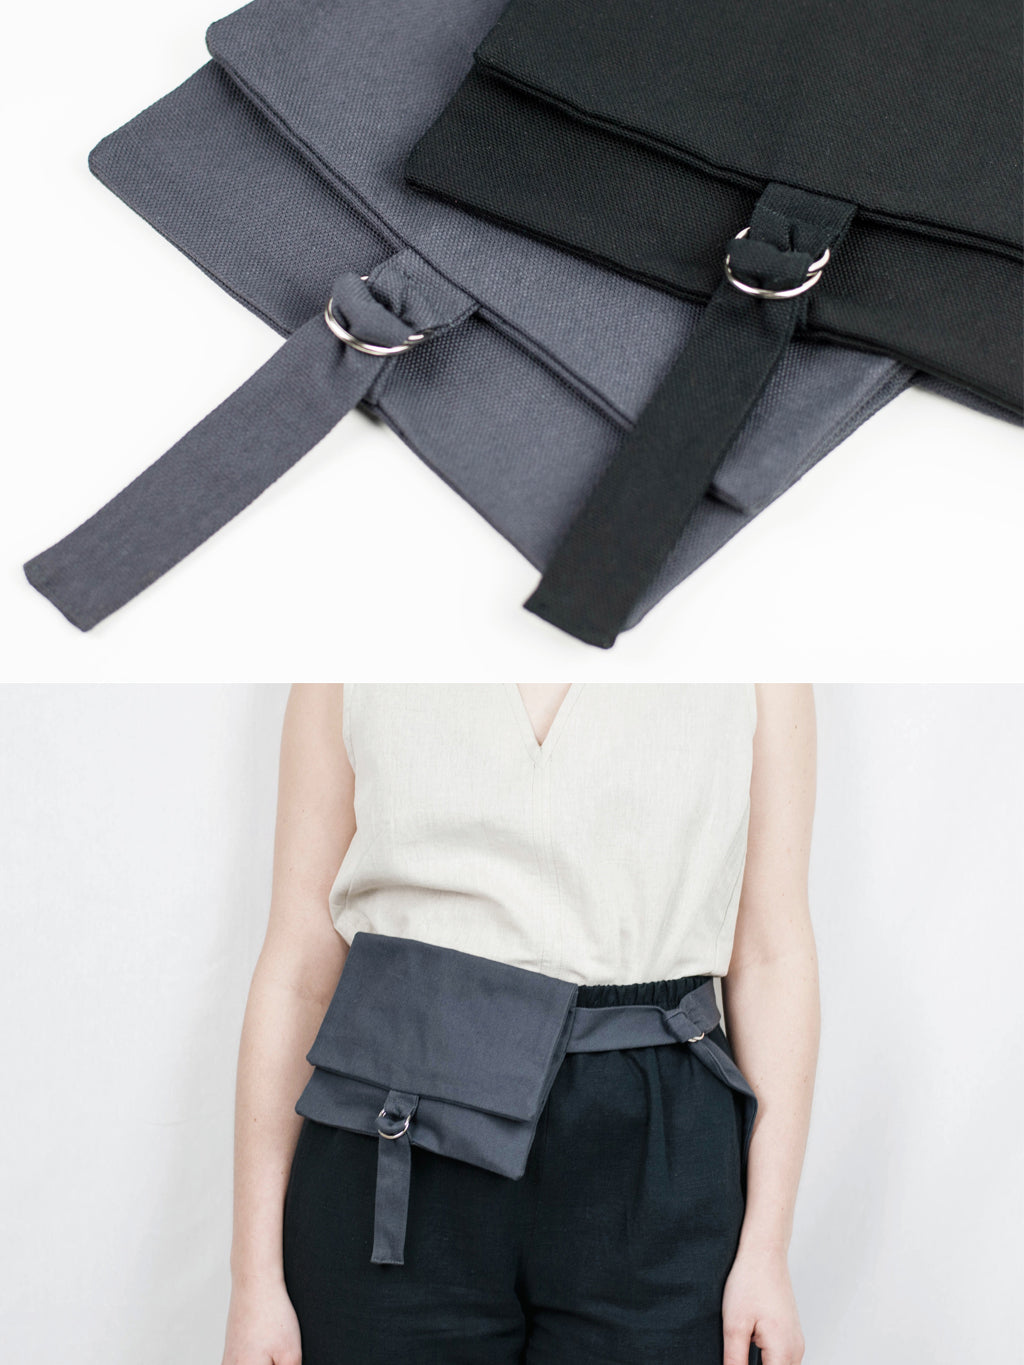 Handmade belt bag. GOTS certified organic cotton.